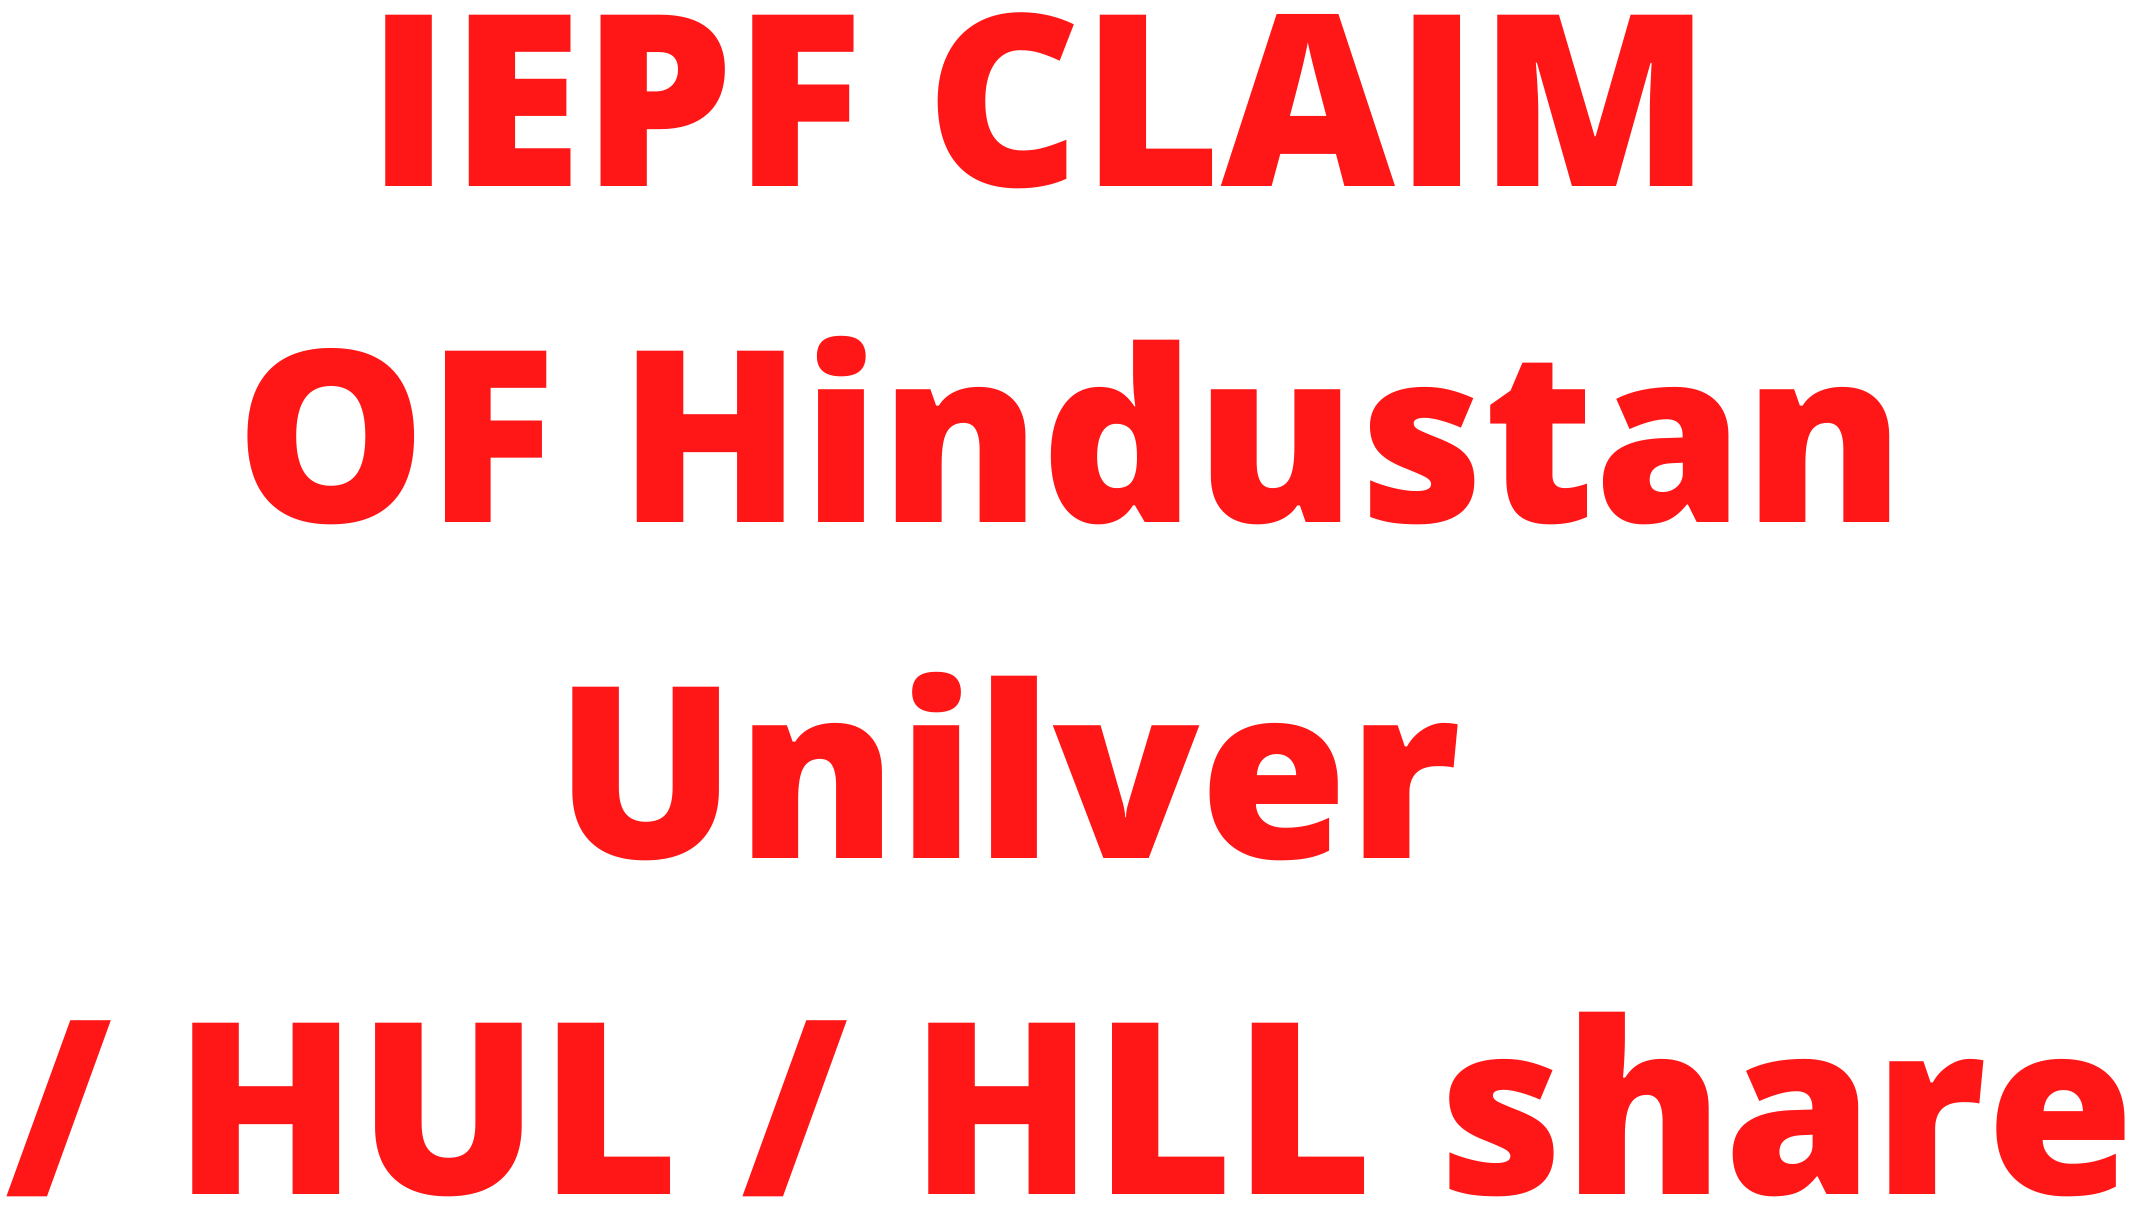 IEPF claim or IEPF refund of  HINDUSTAN UNILEVER LTD / HUL (EARLIER KNOWN AS HLL)  shares / unclaimed dividend of HINDUSTAN UNILEVER LTD / HUL shares?